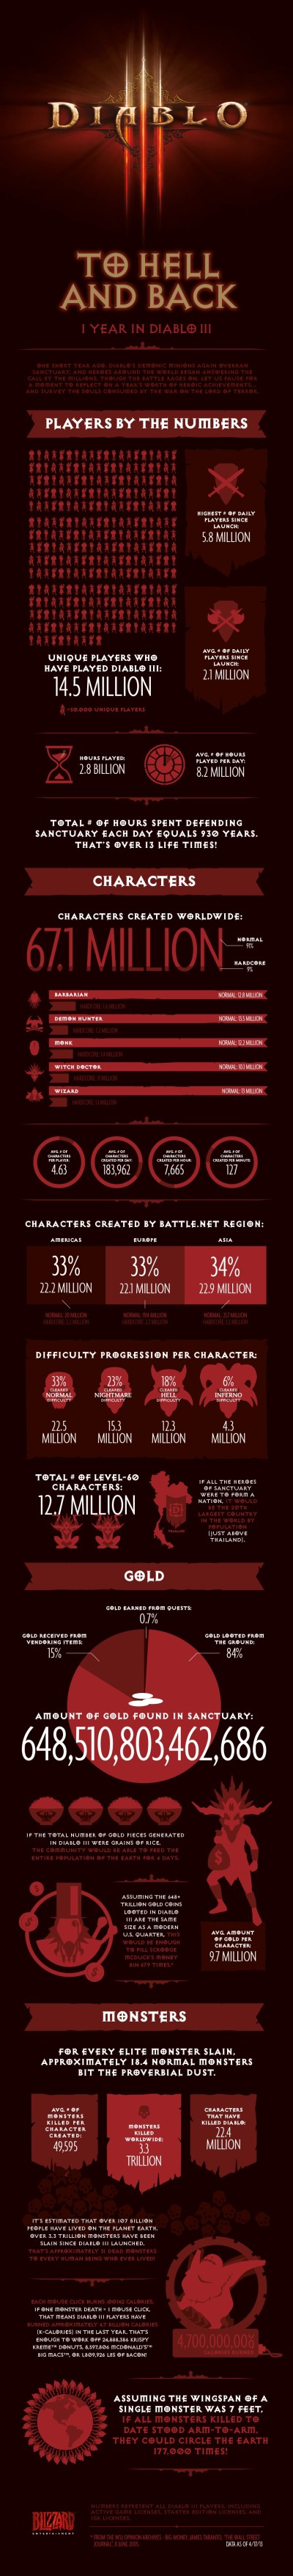 Diablo III first year infographic